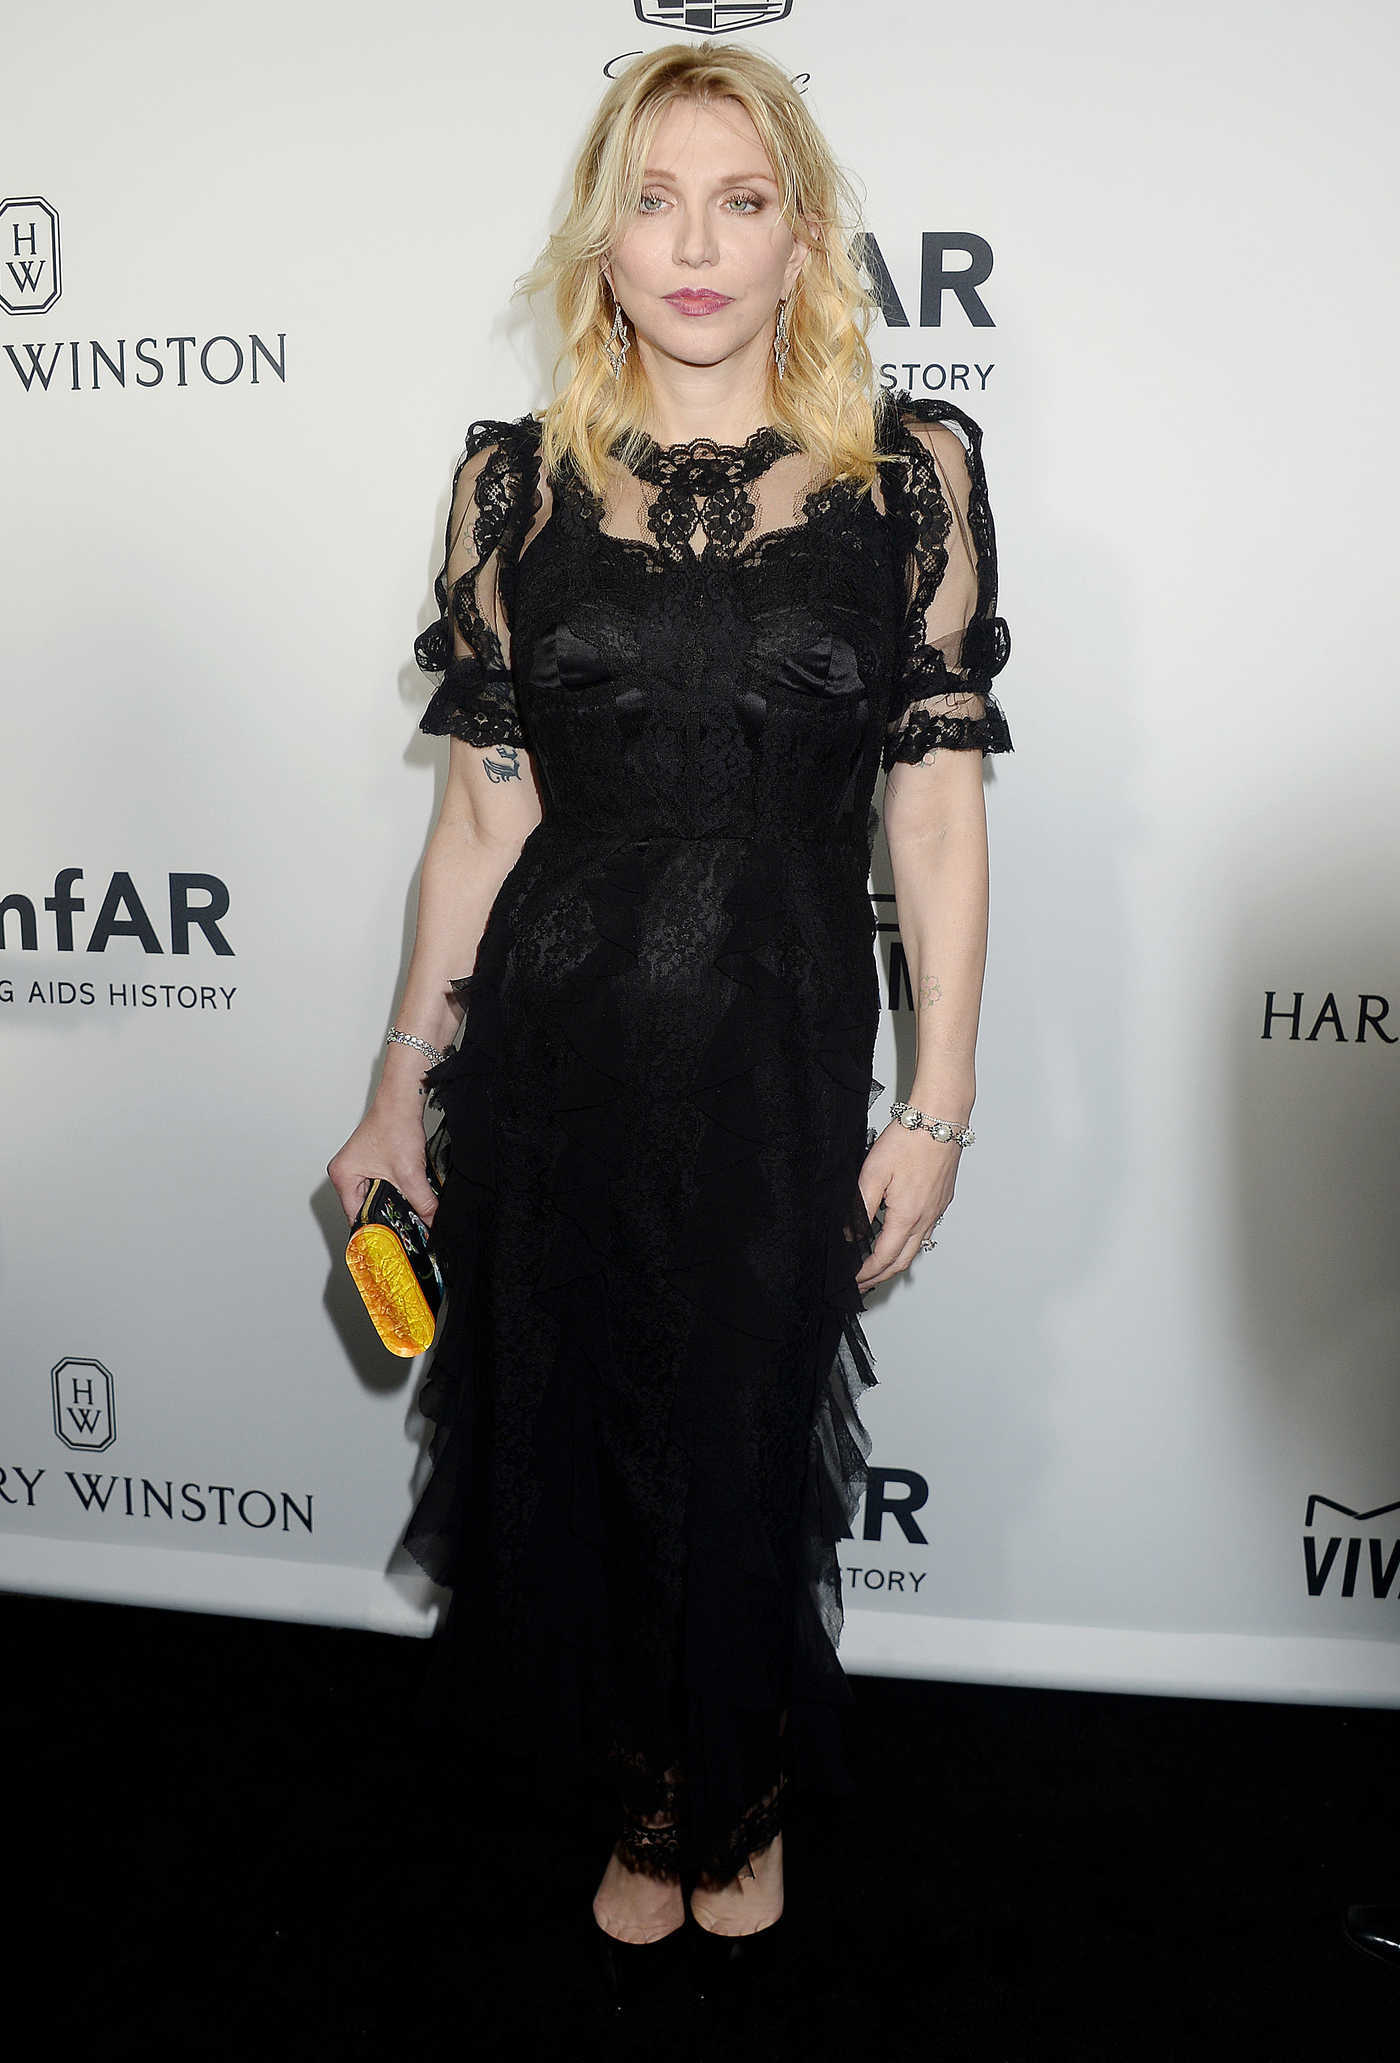 Courtney Love at amfAR's Inspiration Gala in Hollywood 10/27/2016